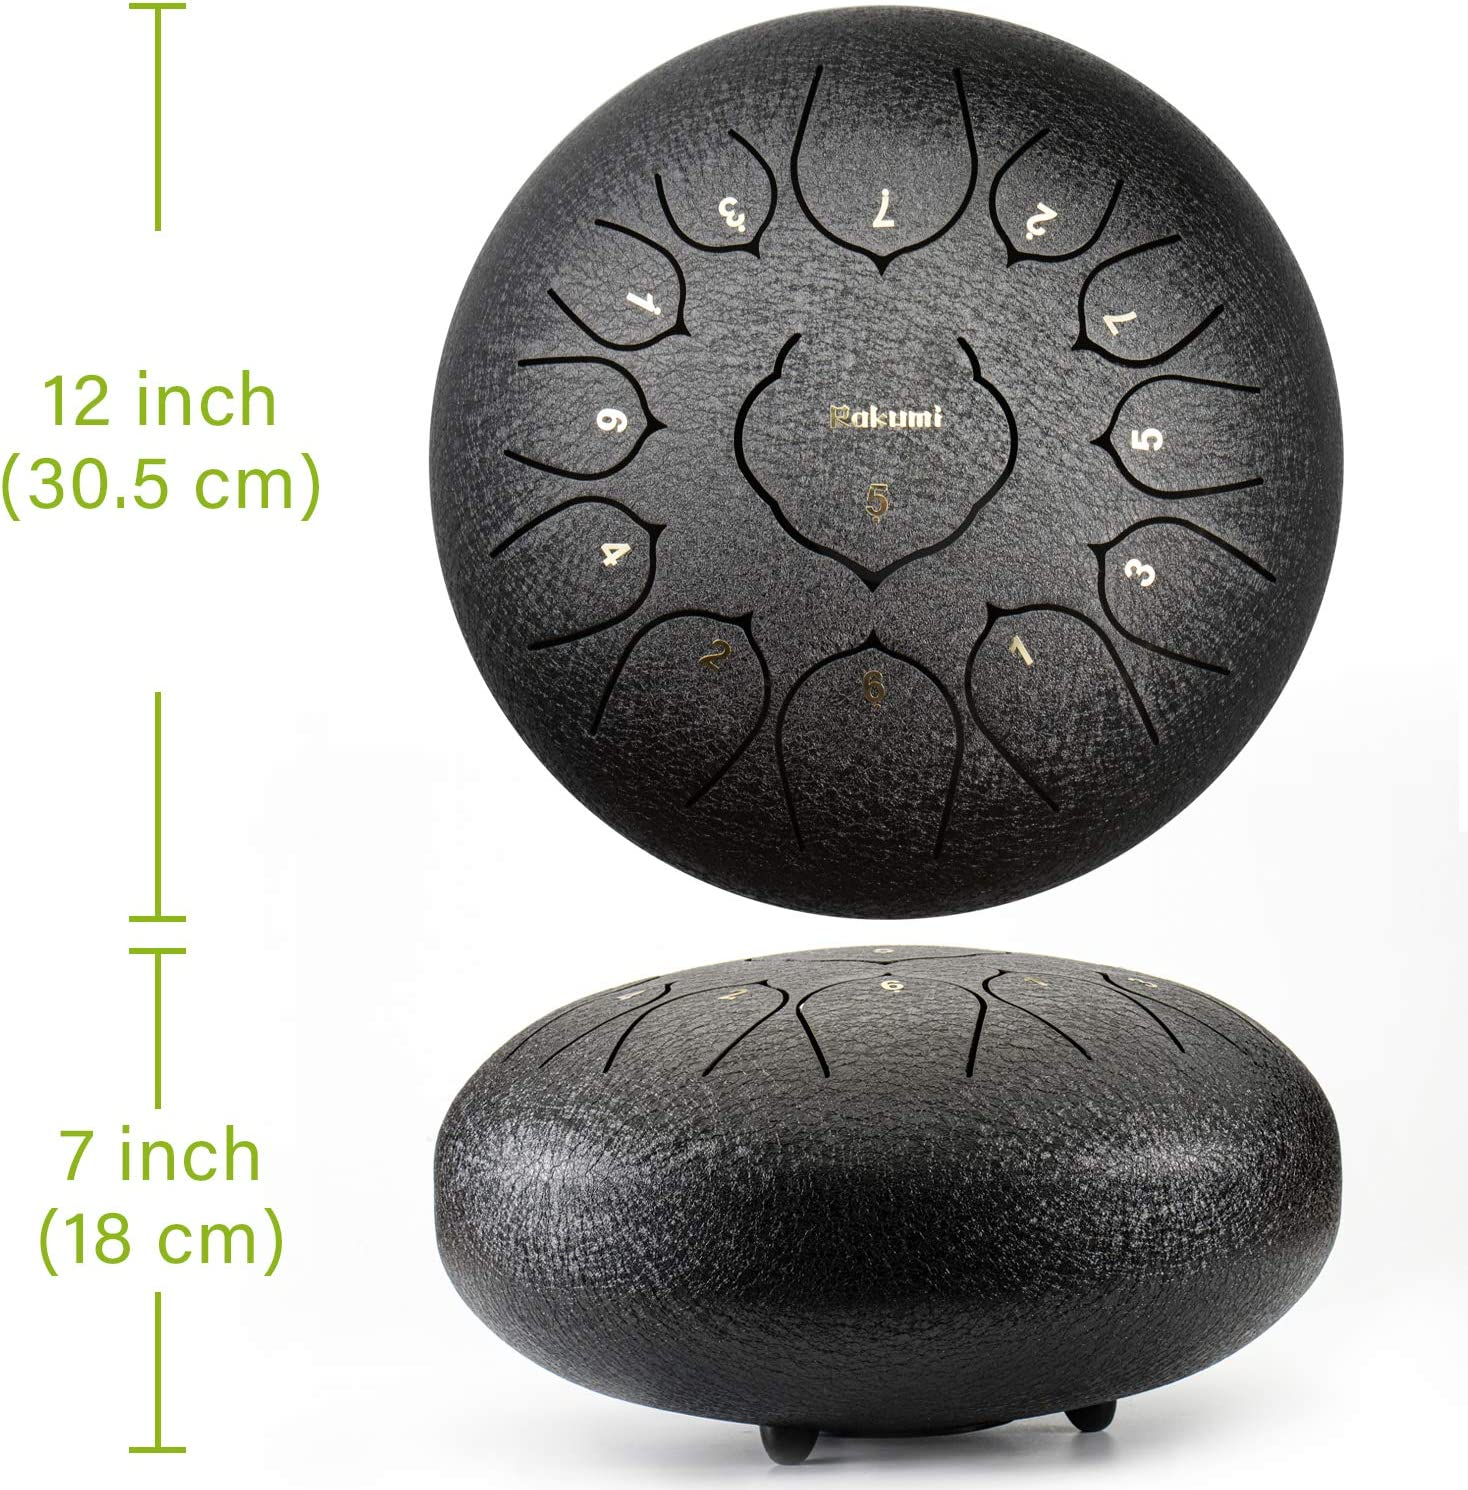 Steel Tongue Drum,12 Inch 13 Note Stainless Steel Tongue Drum Percussion Instrument Lotus Hand Pan Drum with Drum Mallets Carry Bag,Drum Mallets Wide Range of Sound,ideal for Kids and Adults